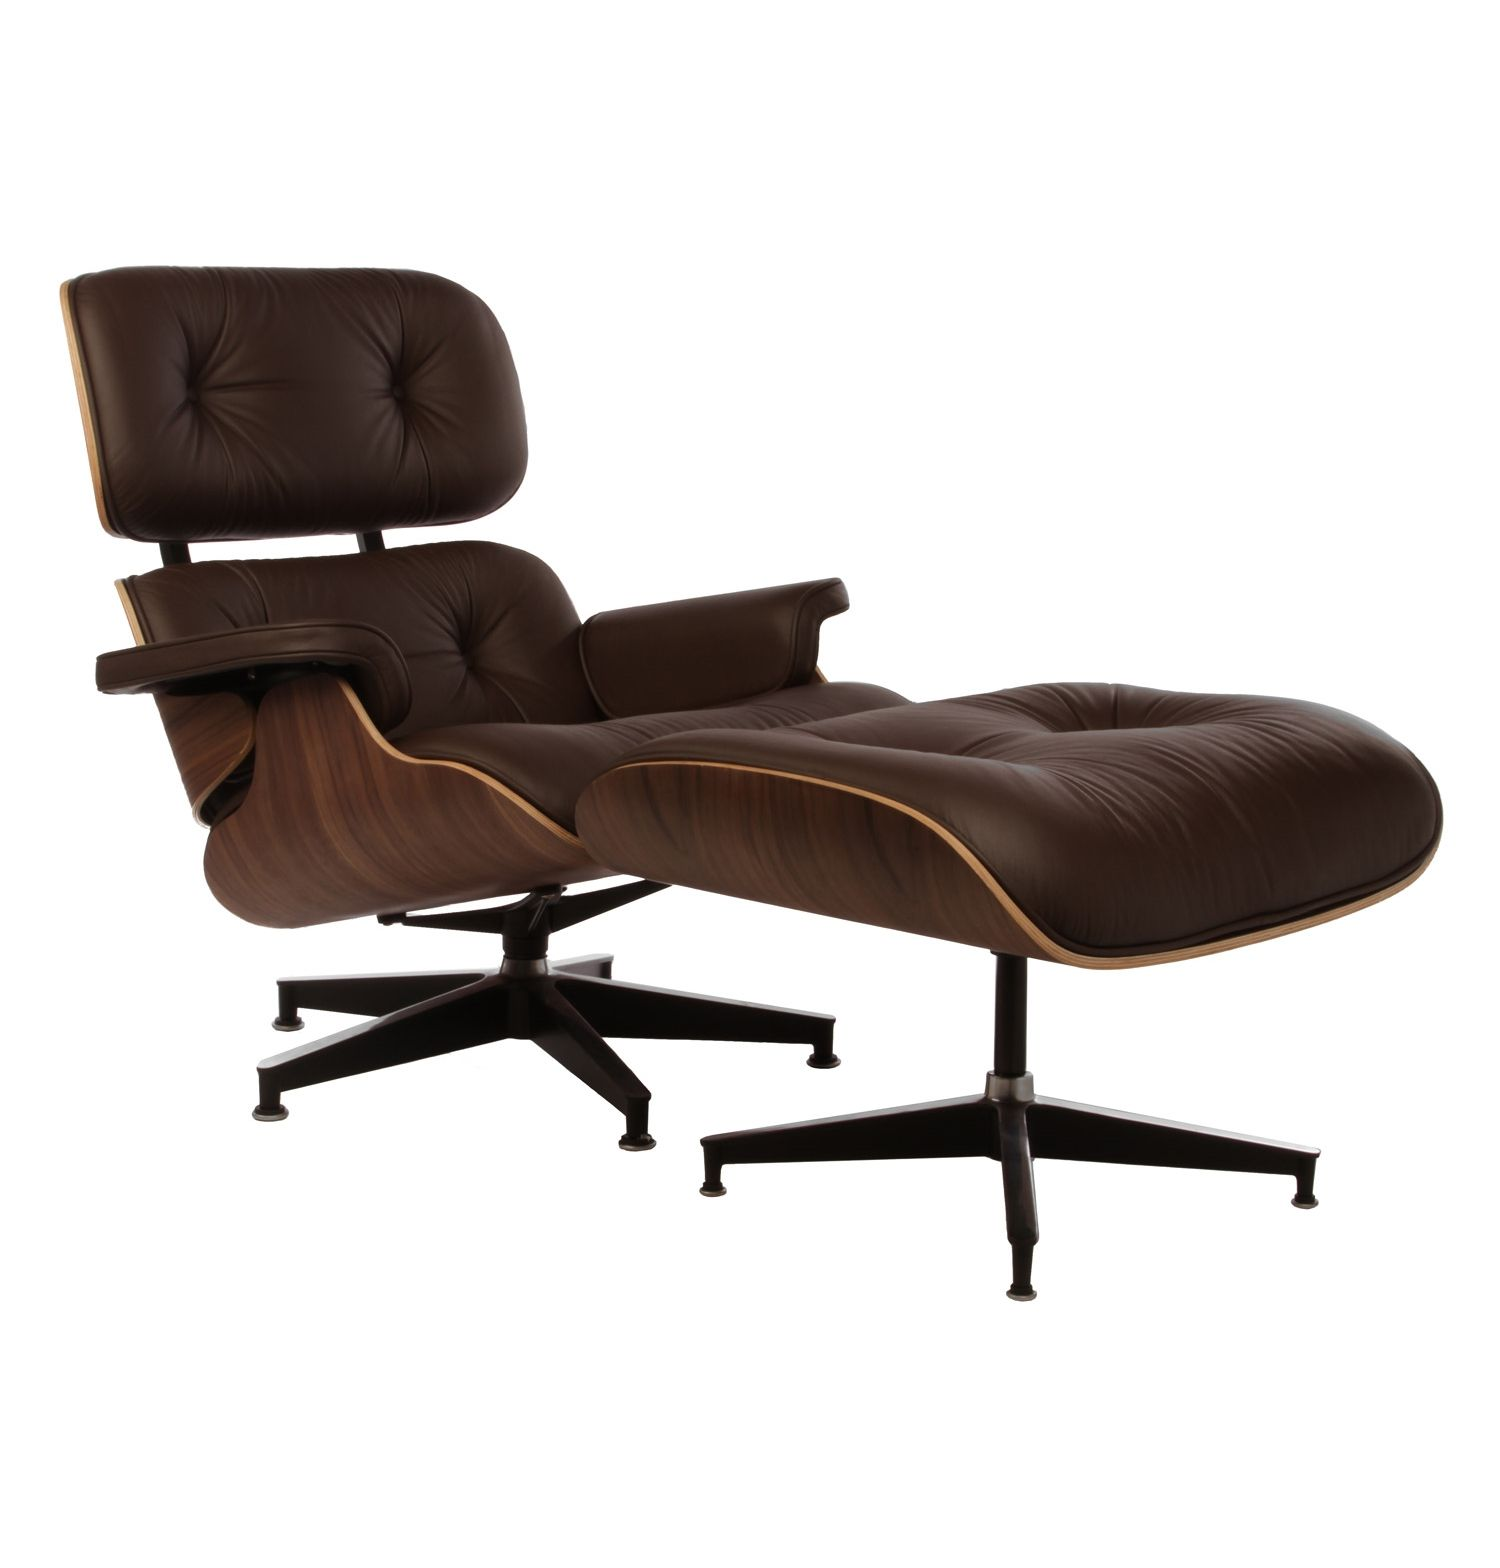 The Matt Blatt Replica Eames Lounge Chair And Ottoman